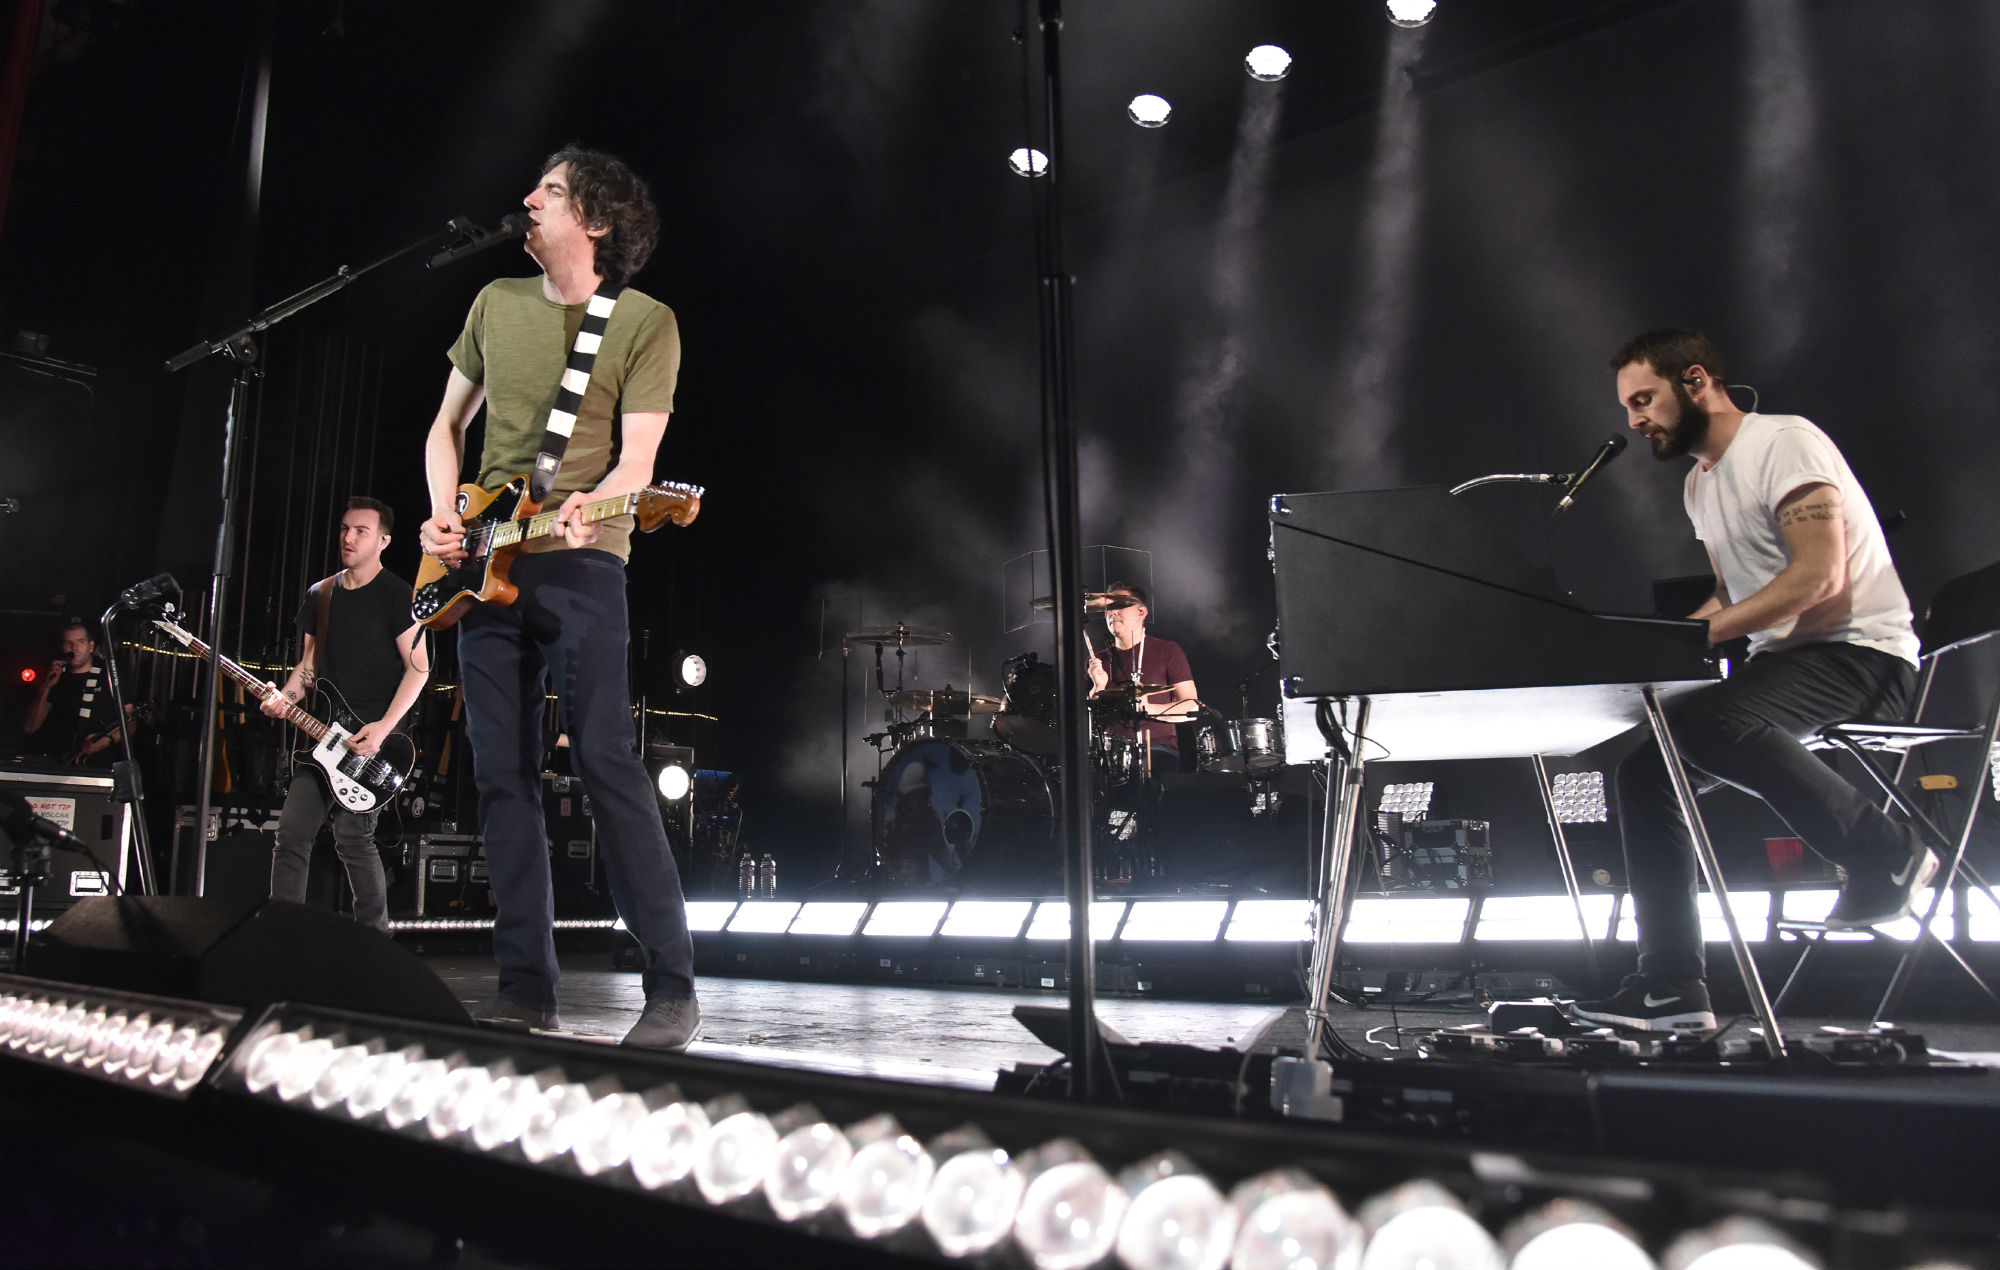 """(L-R) Paul Wilson, Gary Lightbody, Jonny Quinn, and Johnny McDaid of Snow Patrol perform in support of the band's """"Wildness"""" release at The Warfield Theater on May 20, 2019 in San Francisco, California"""